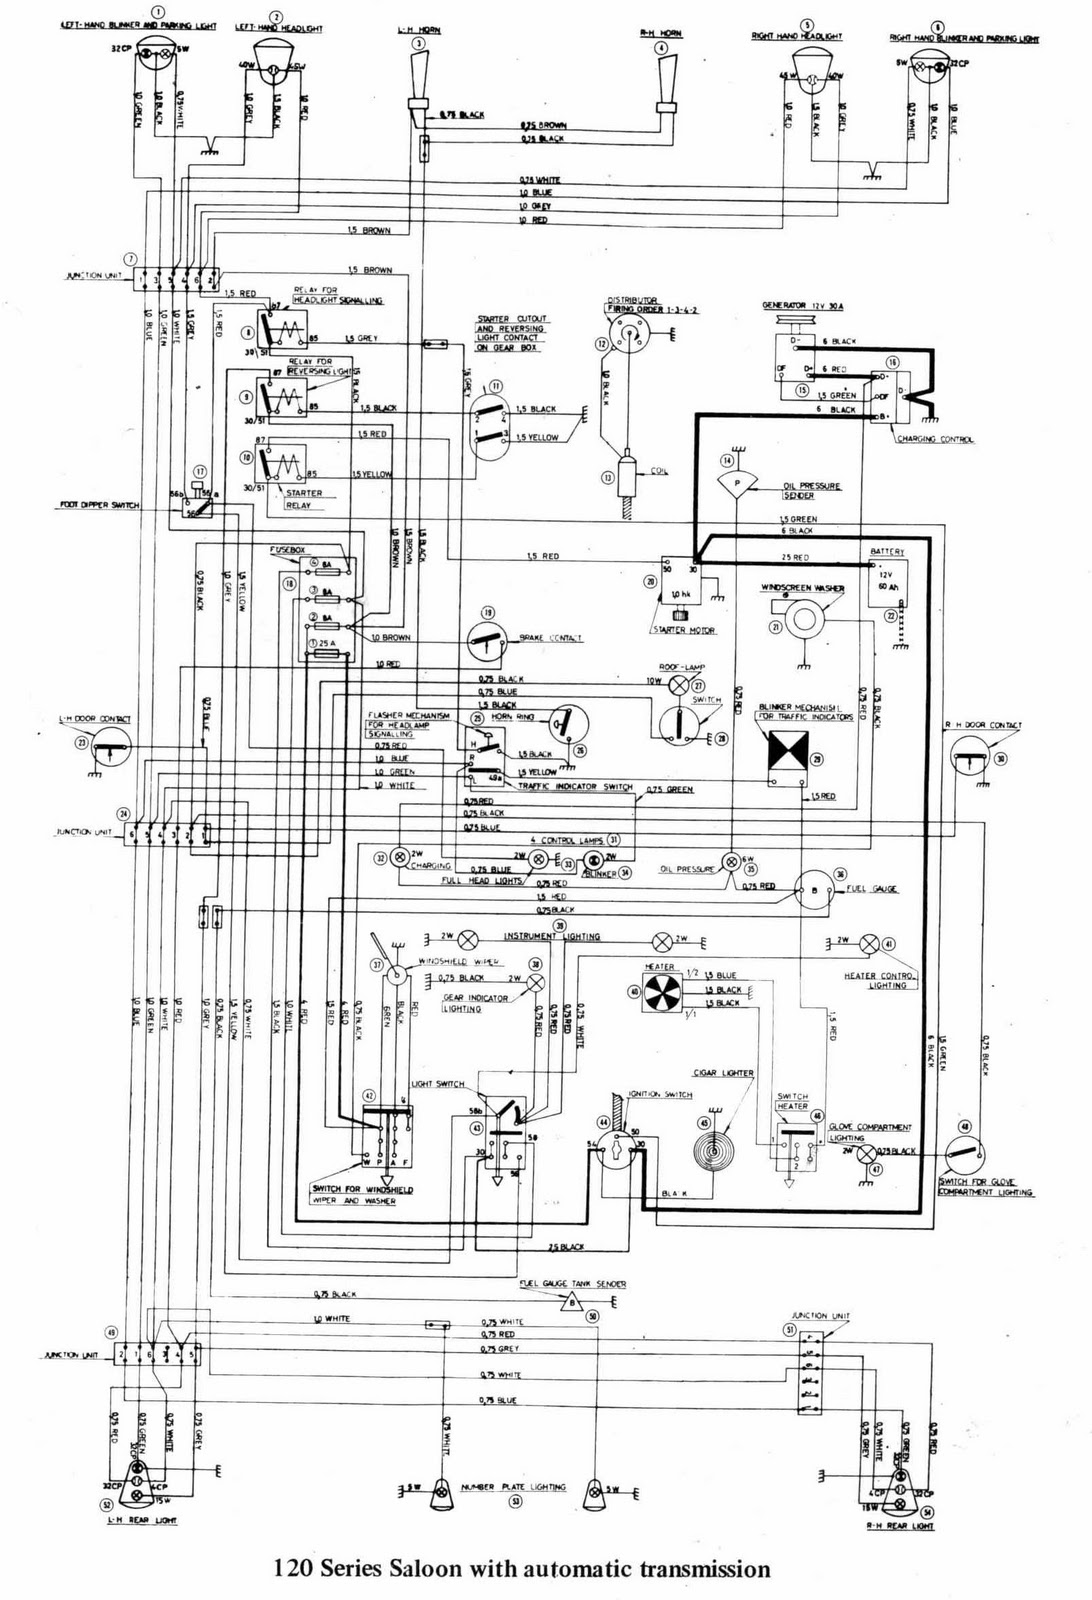 Exciting Volvo Hu 803 Wiring Diagram Photos Best Image Schematics